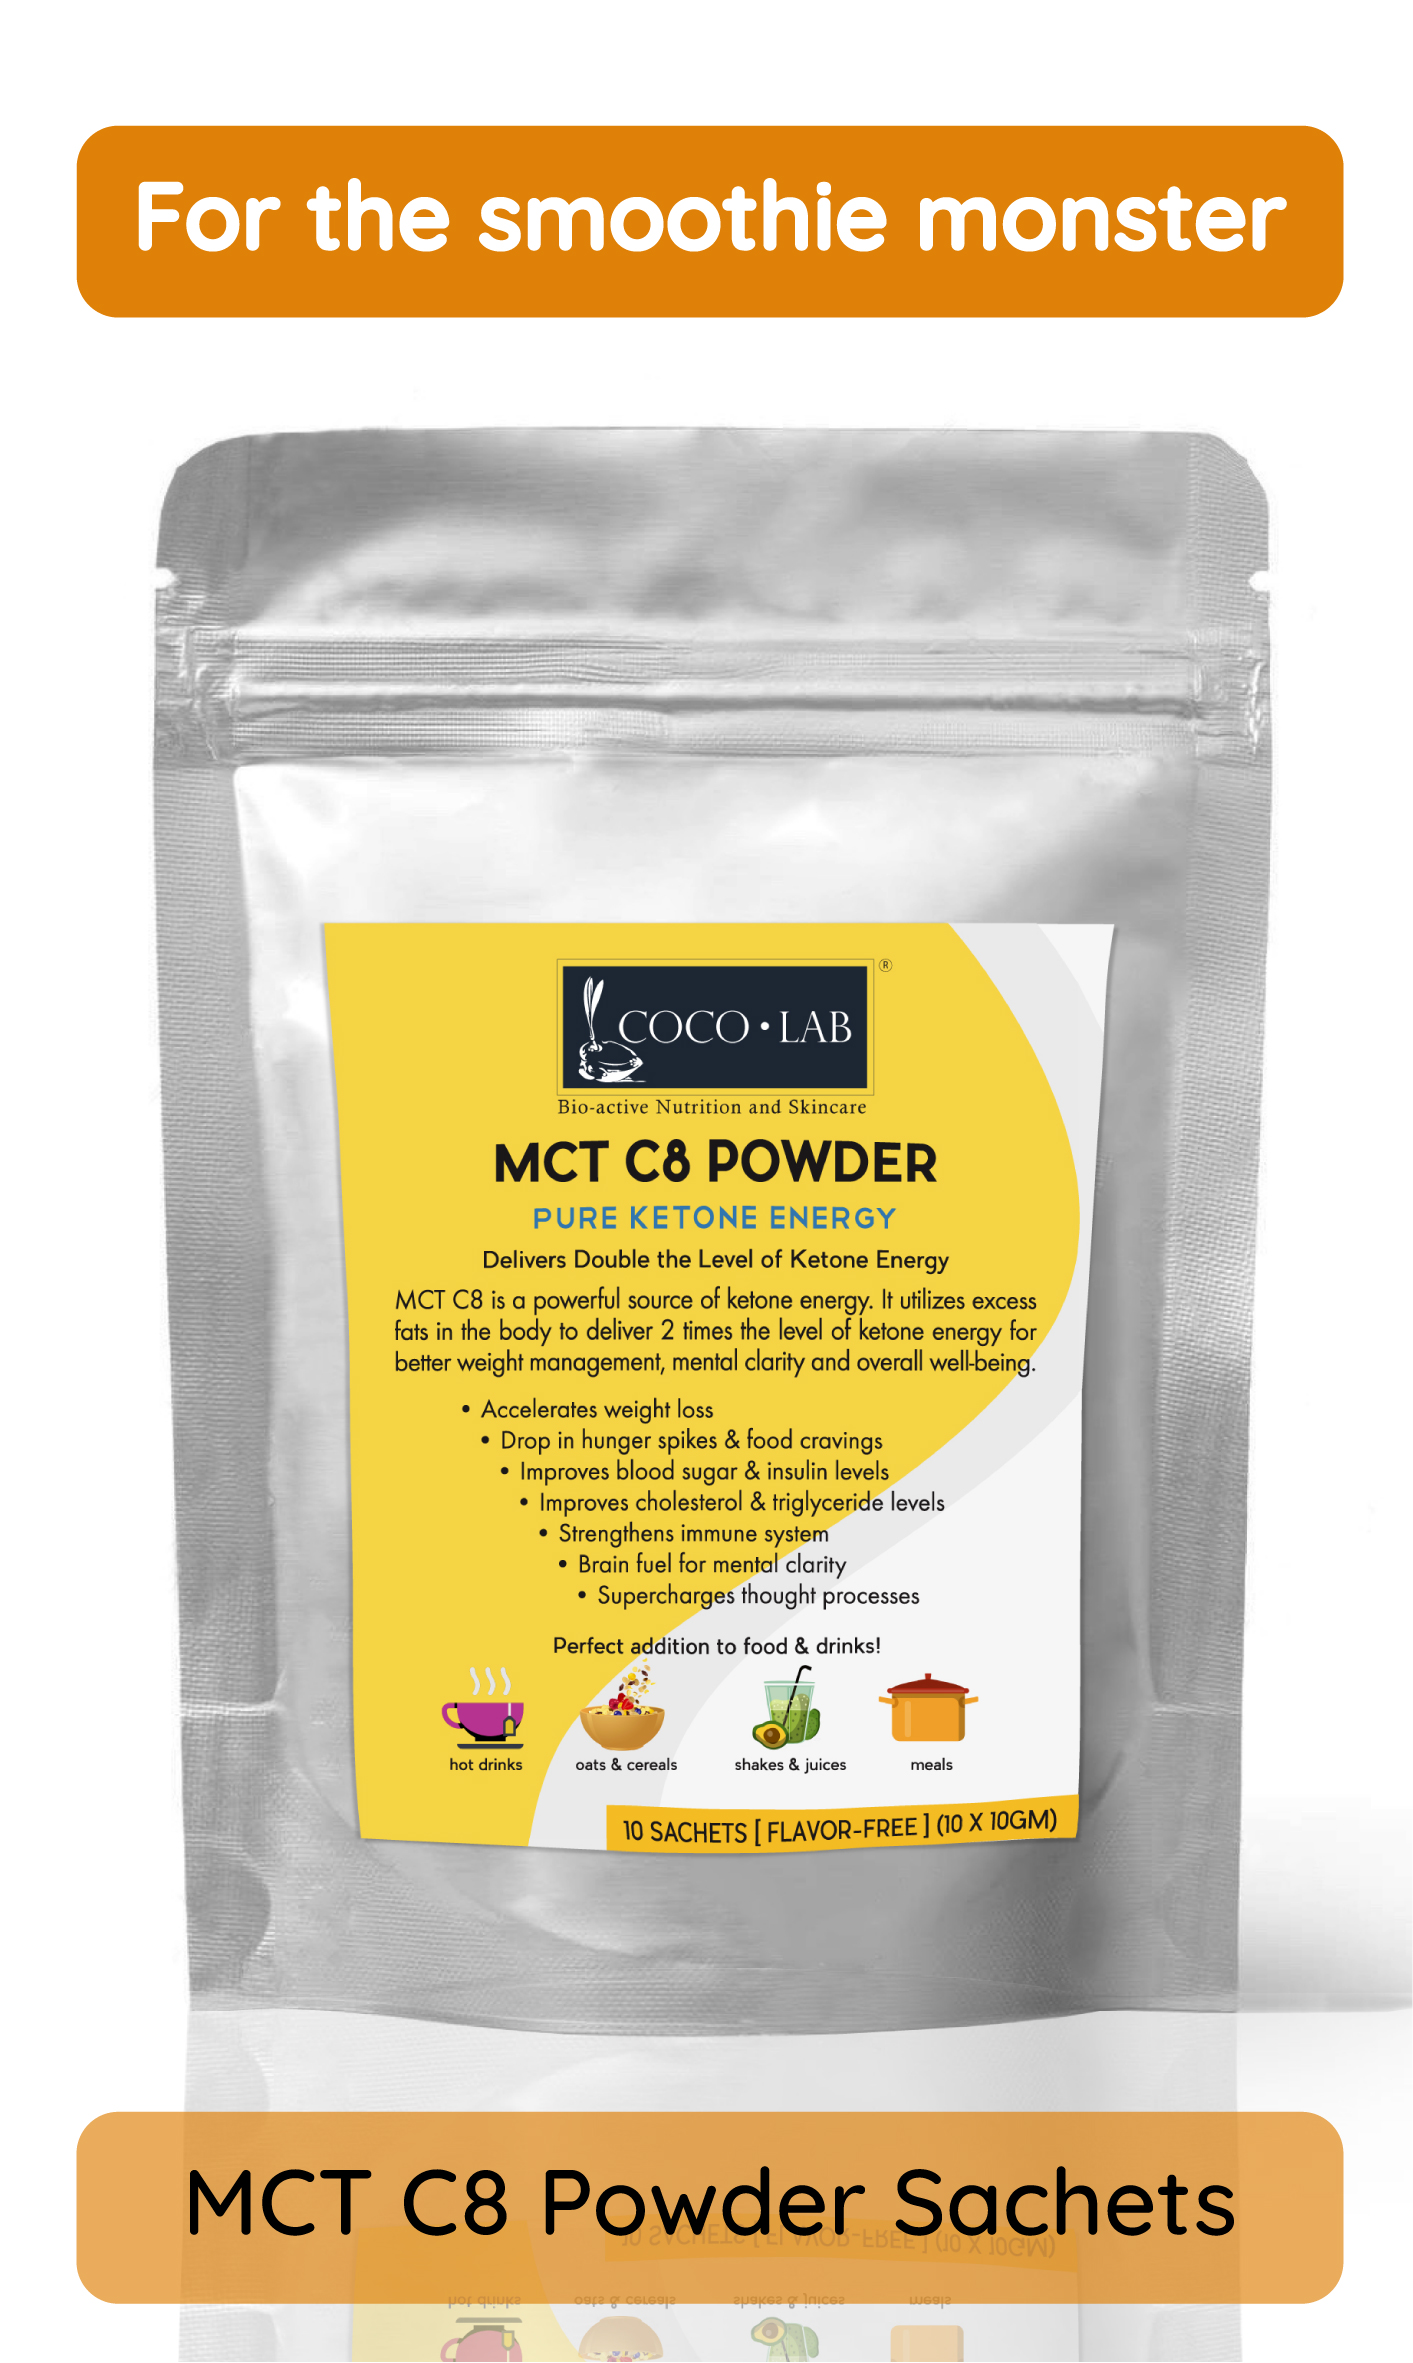 COCOLAB MCT C8 POWDER - smoothie monster.jpg